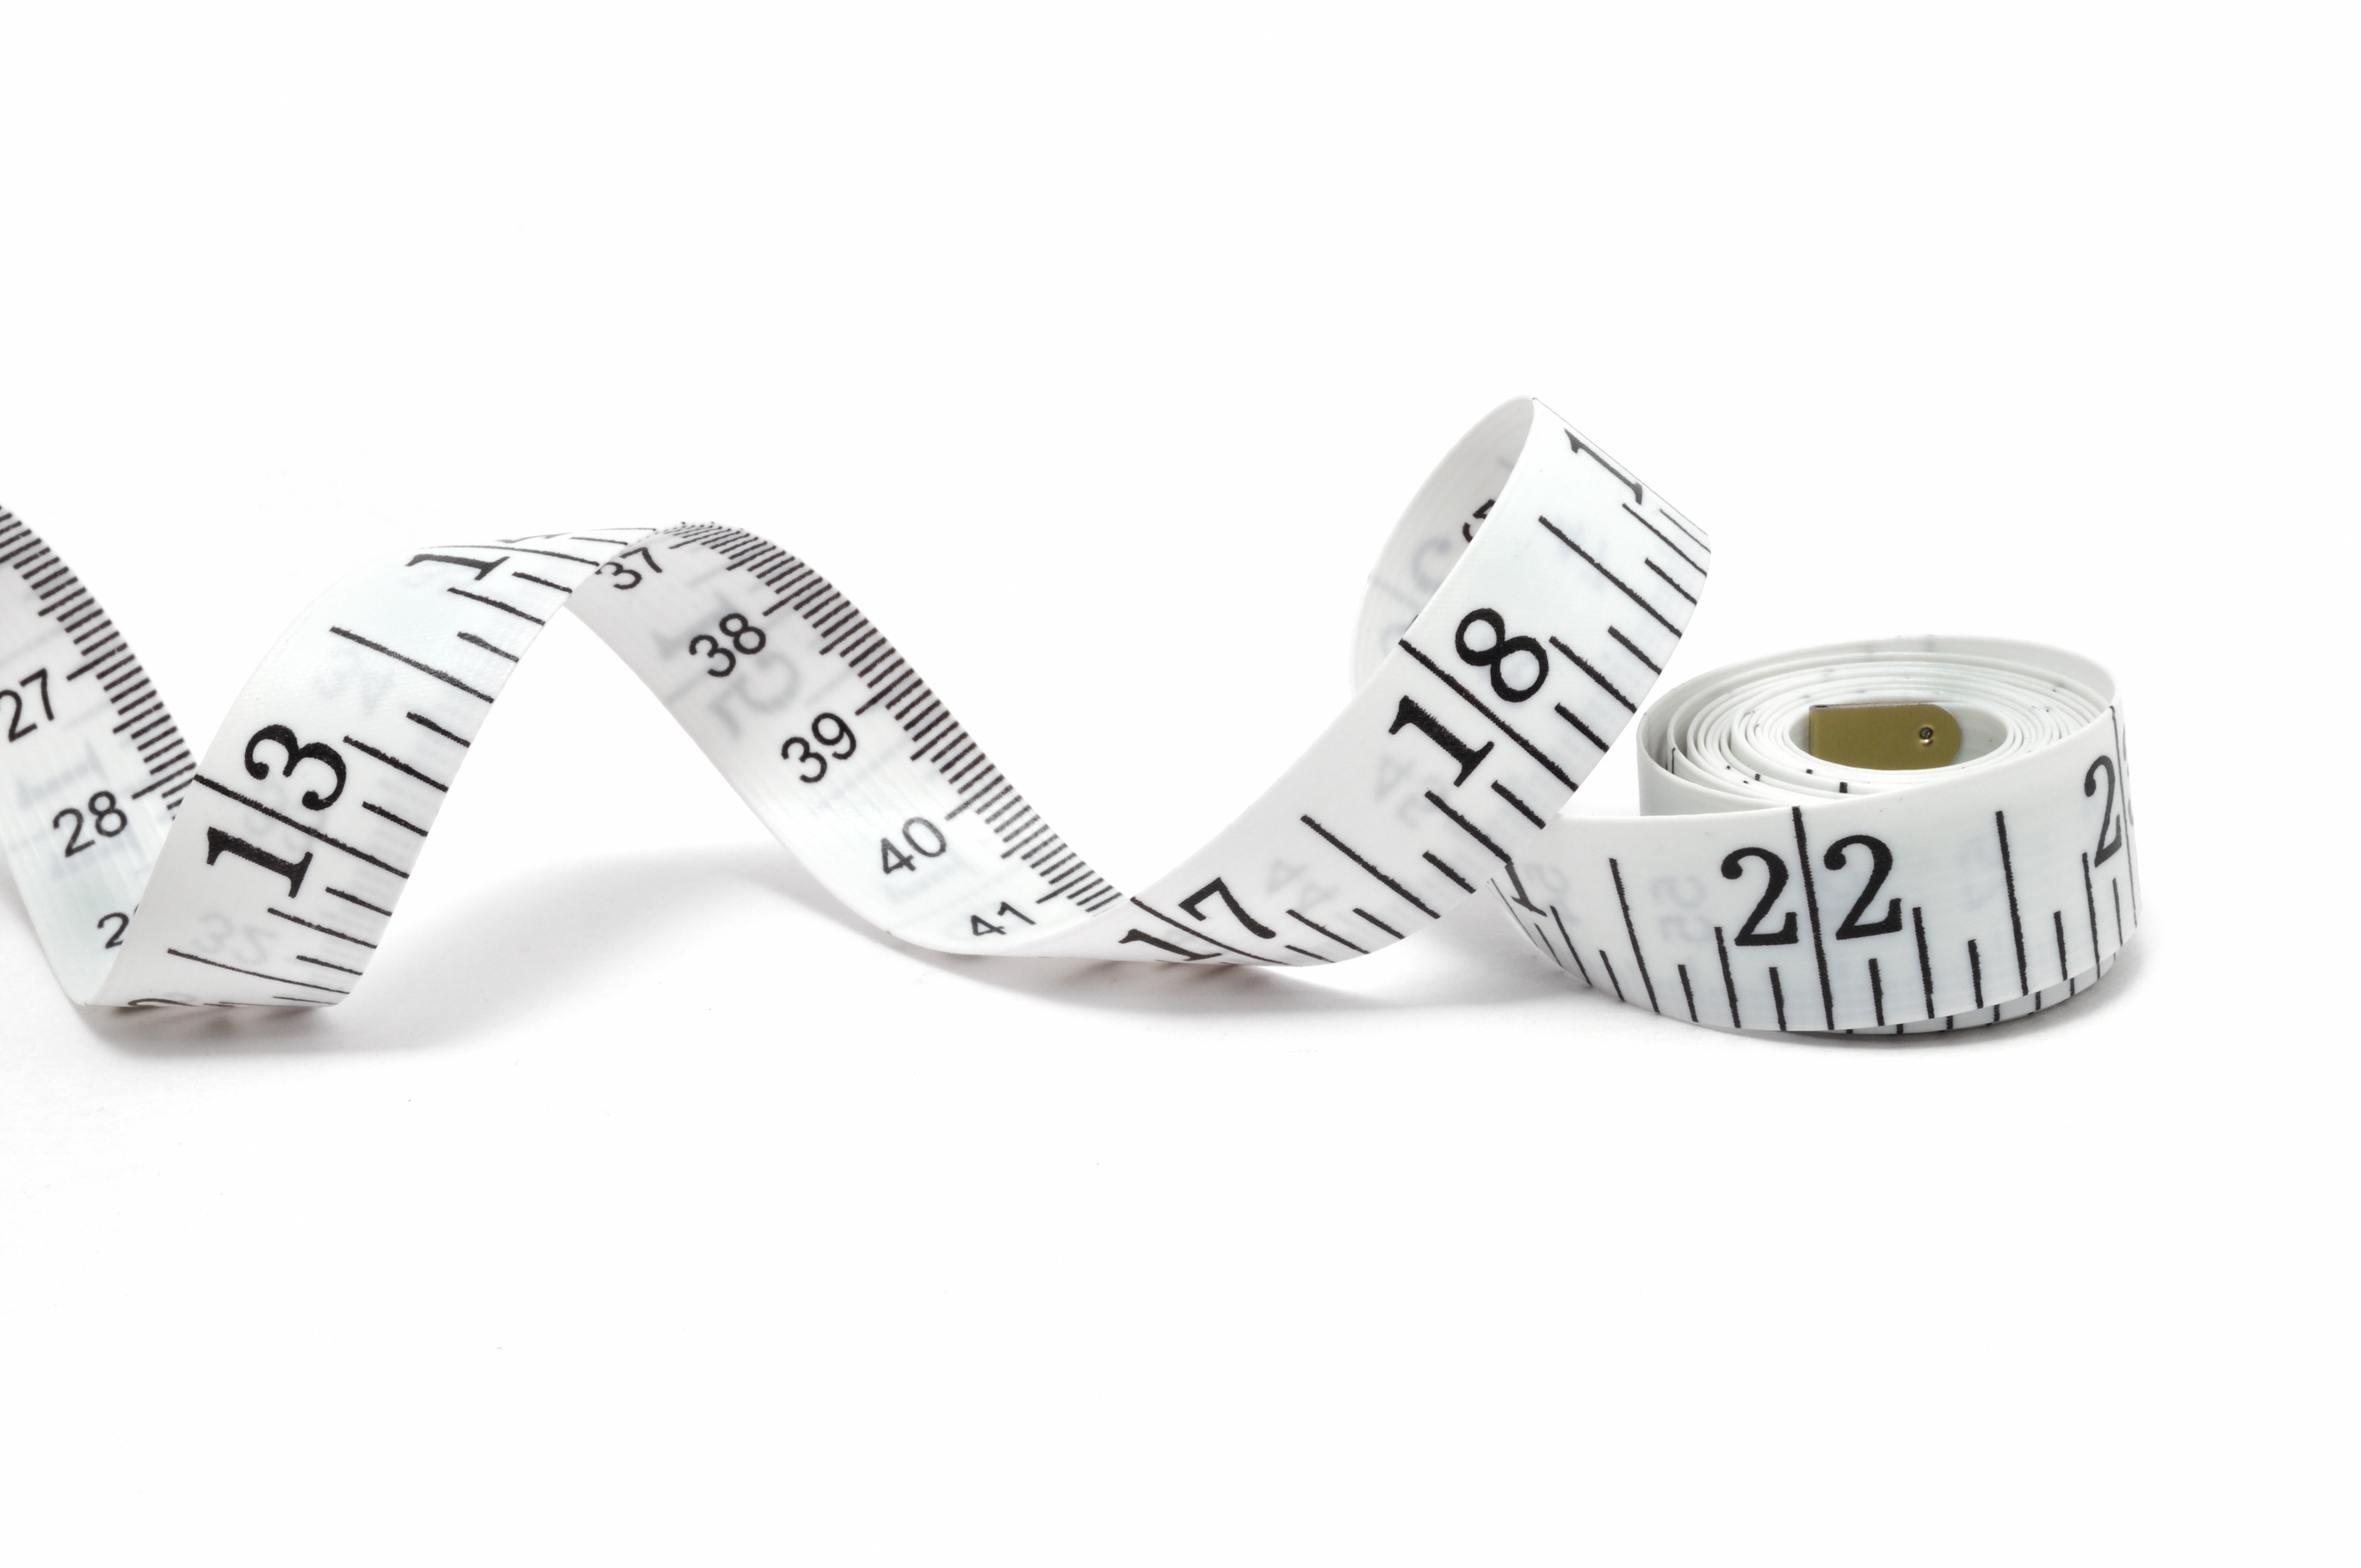 Tape measure around waist clipart picture royalty free library Body Measuring Tape Clipart - Clip Art Library picture royalty free library